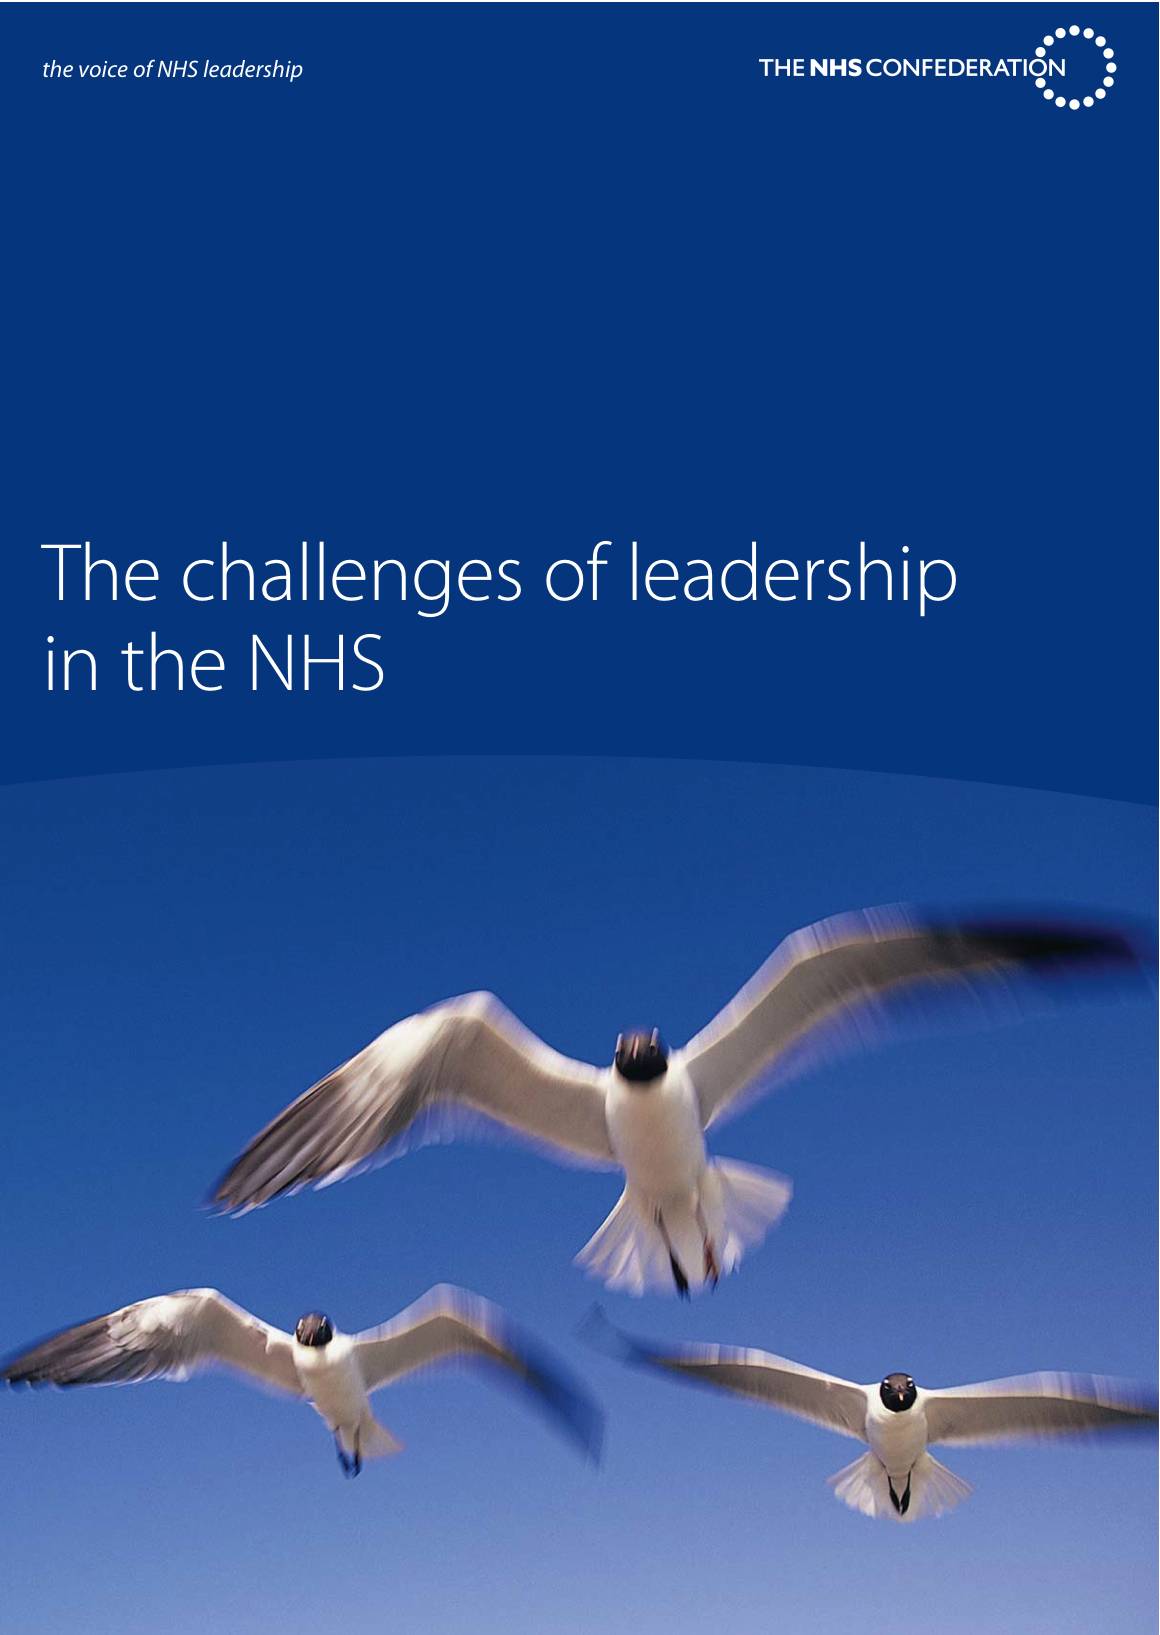 The challenges of leadership in the NHS